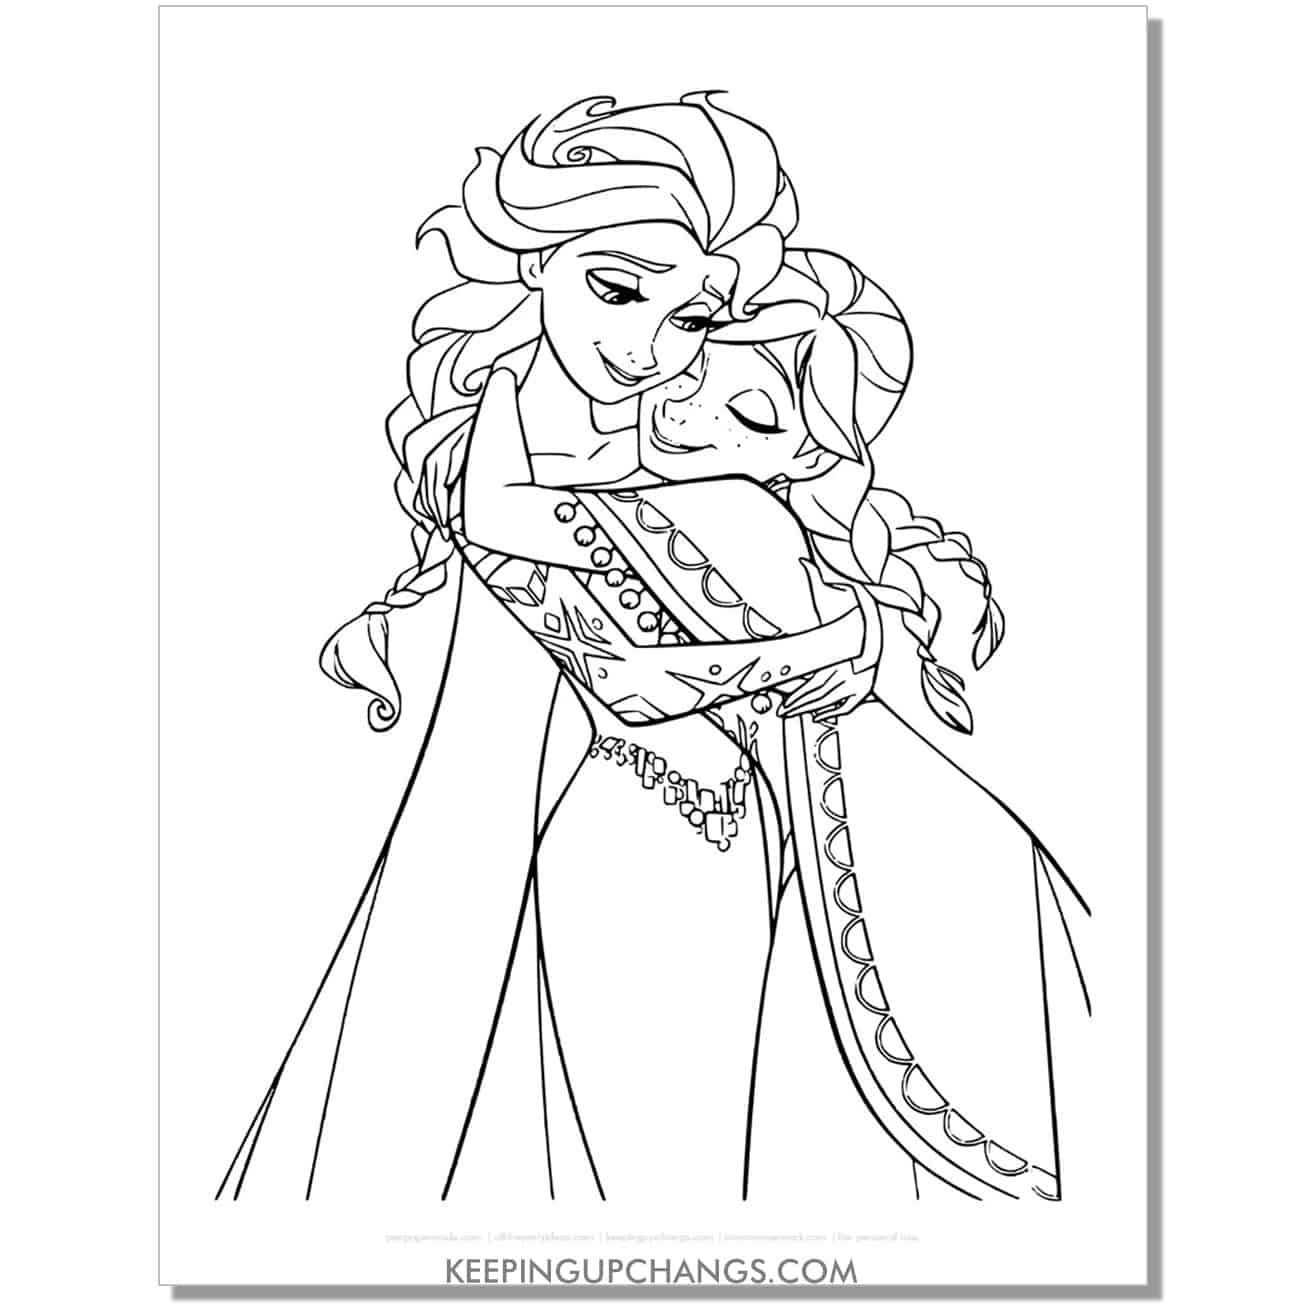 free frozen elsa and anna hugging full body coloring page.